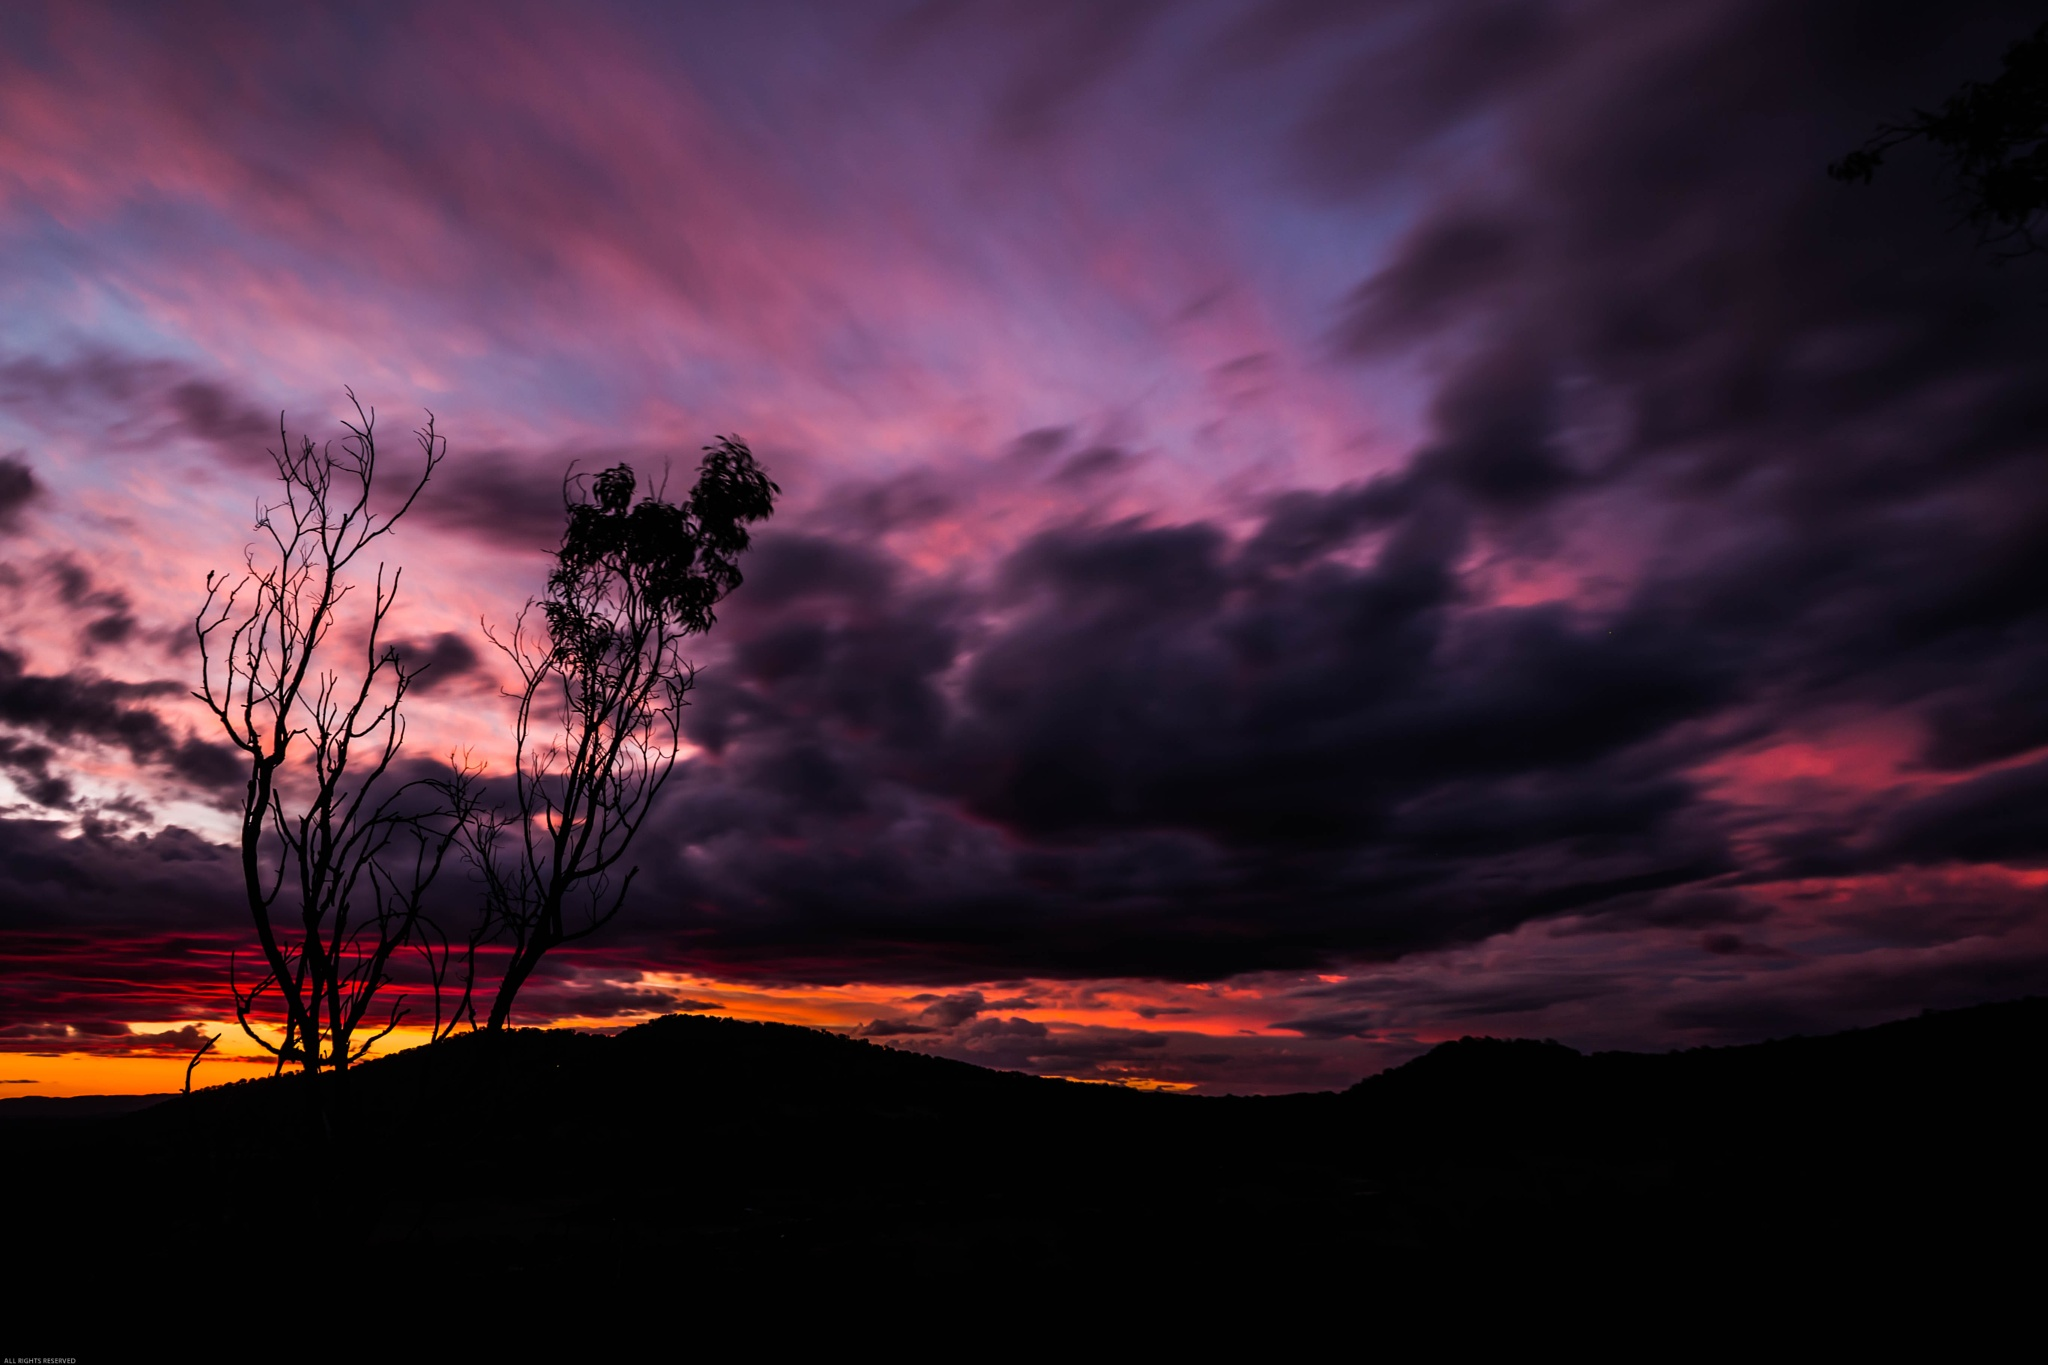 Mount Yarrowyck Sunset by RobertStanley